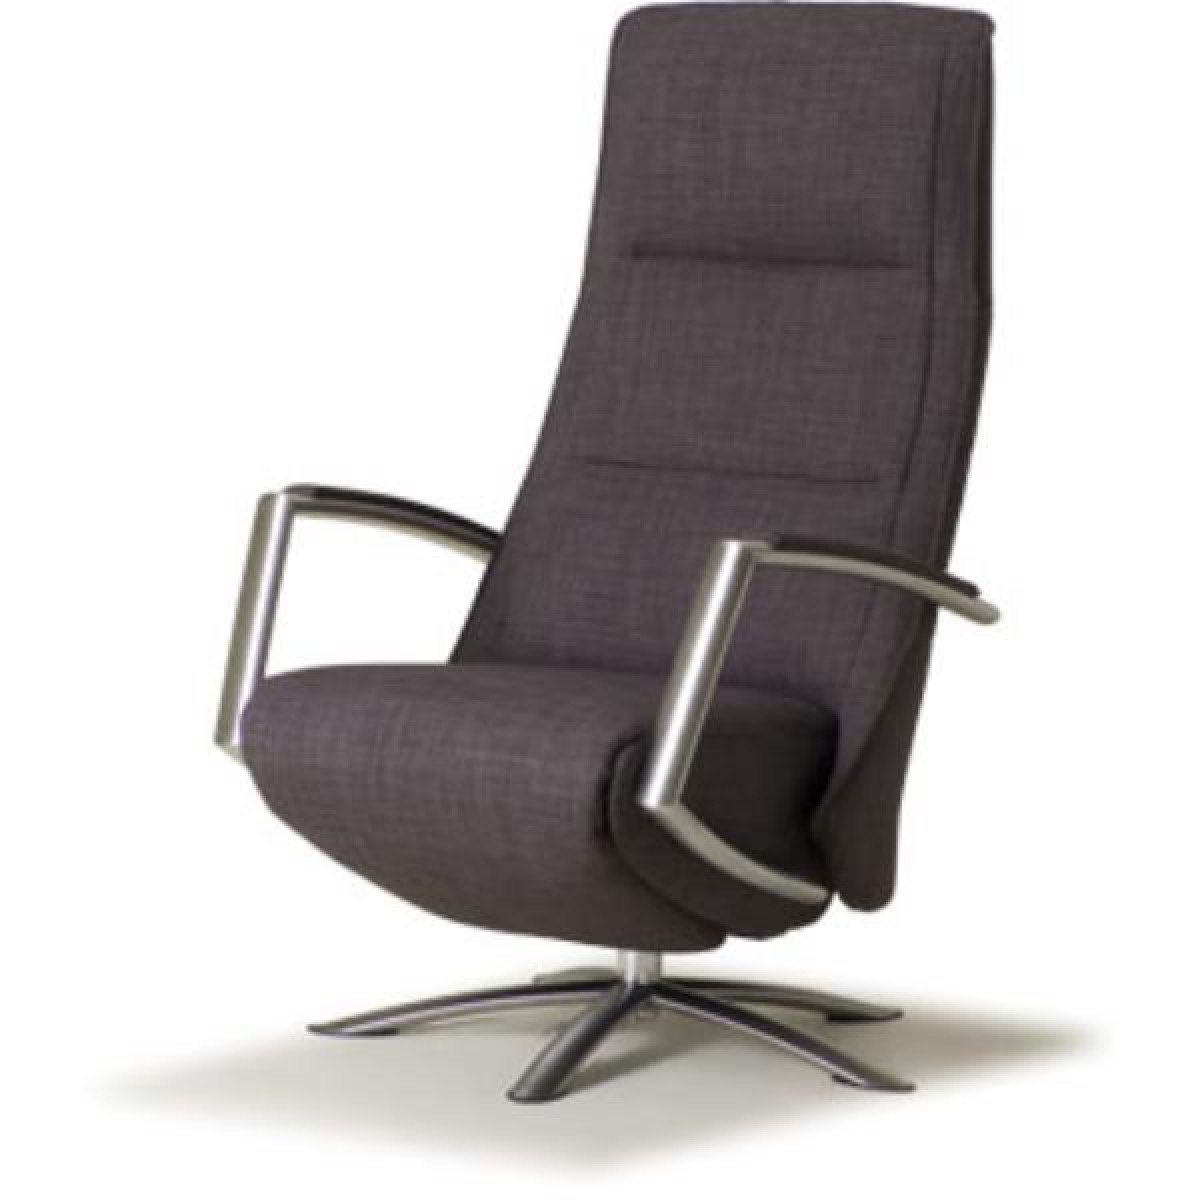 twice-061-relaxfauteuil-stof